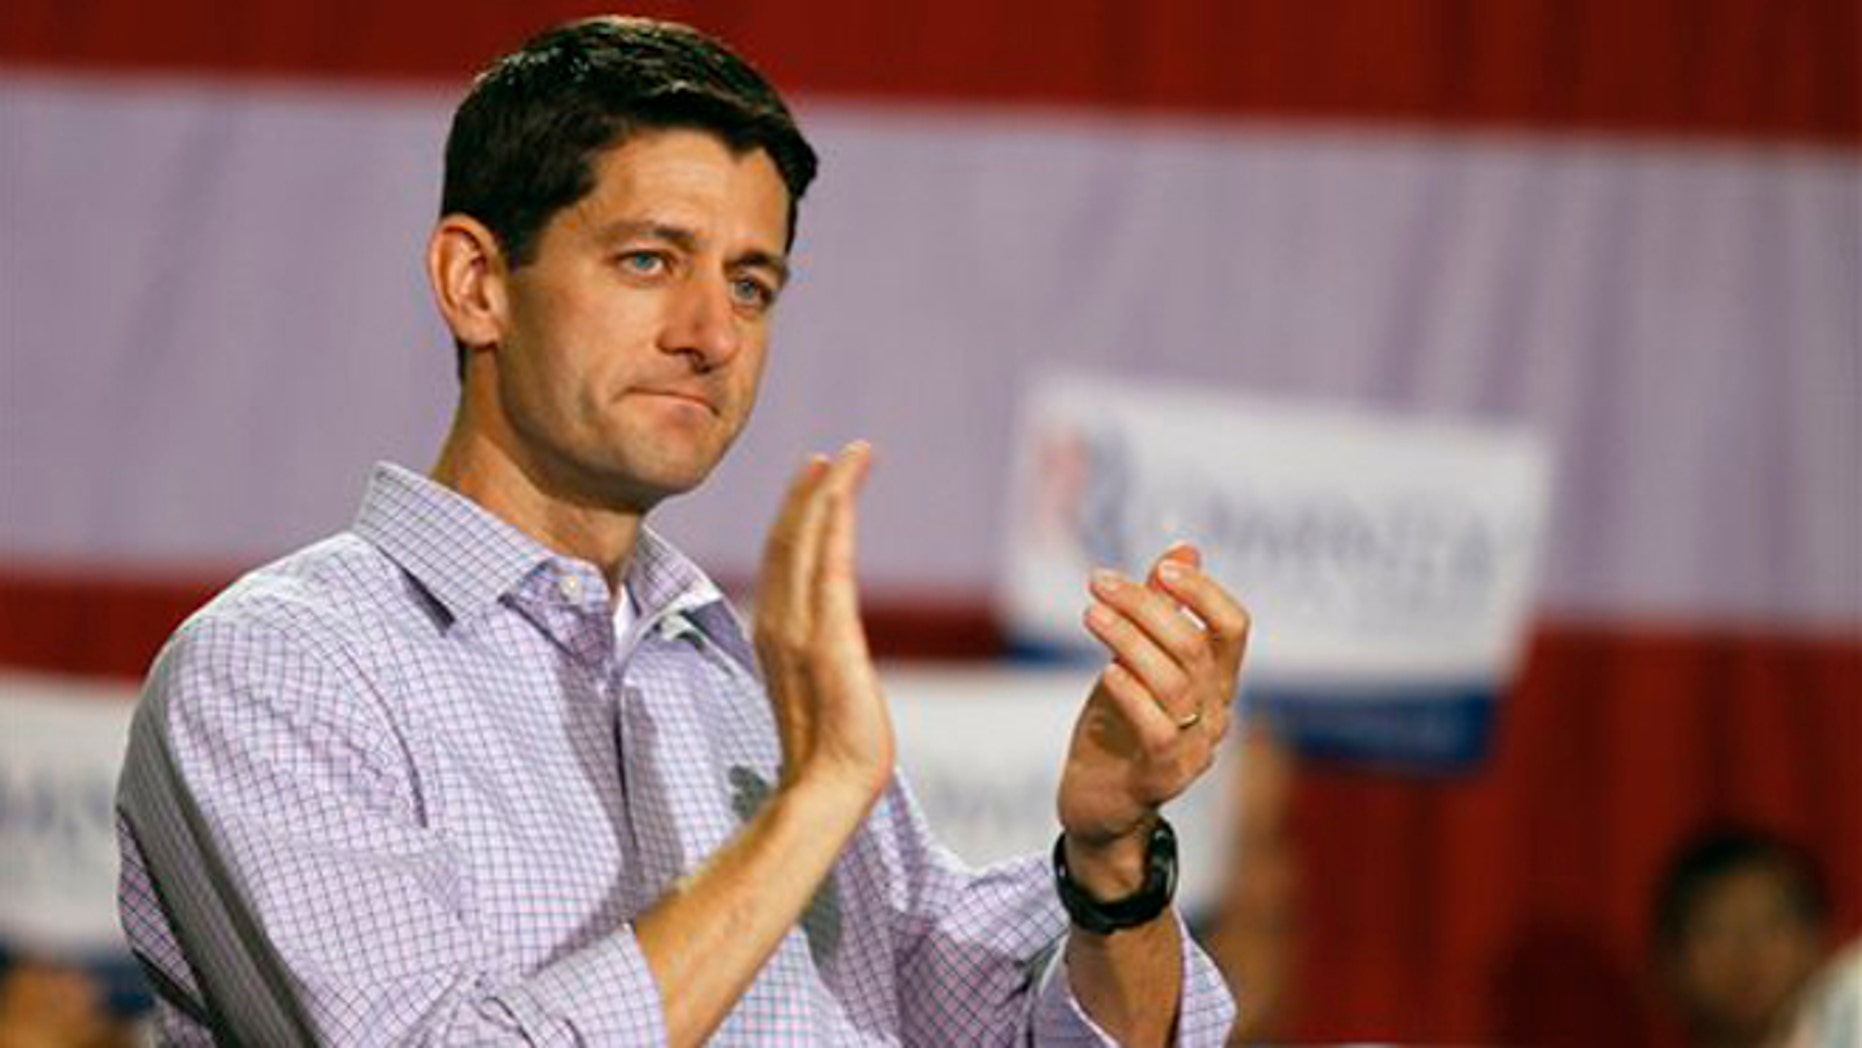 CORRECTS DATELINE - Republican presidential candidate Mitt Romney's vice presidential running mate Rep. Paul Ryan, of Wisconsin, appears during a campaign rally at the NASCAR Technical Institute in Mooresville, N.C., Sunday, Aug. 12, 2012. (AP Photo/Charlotte Observer, Adam Jennings)